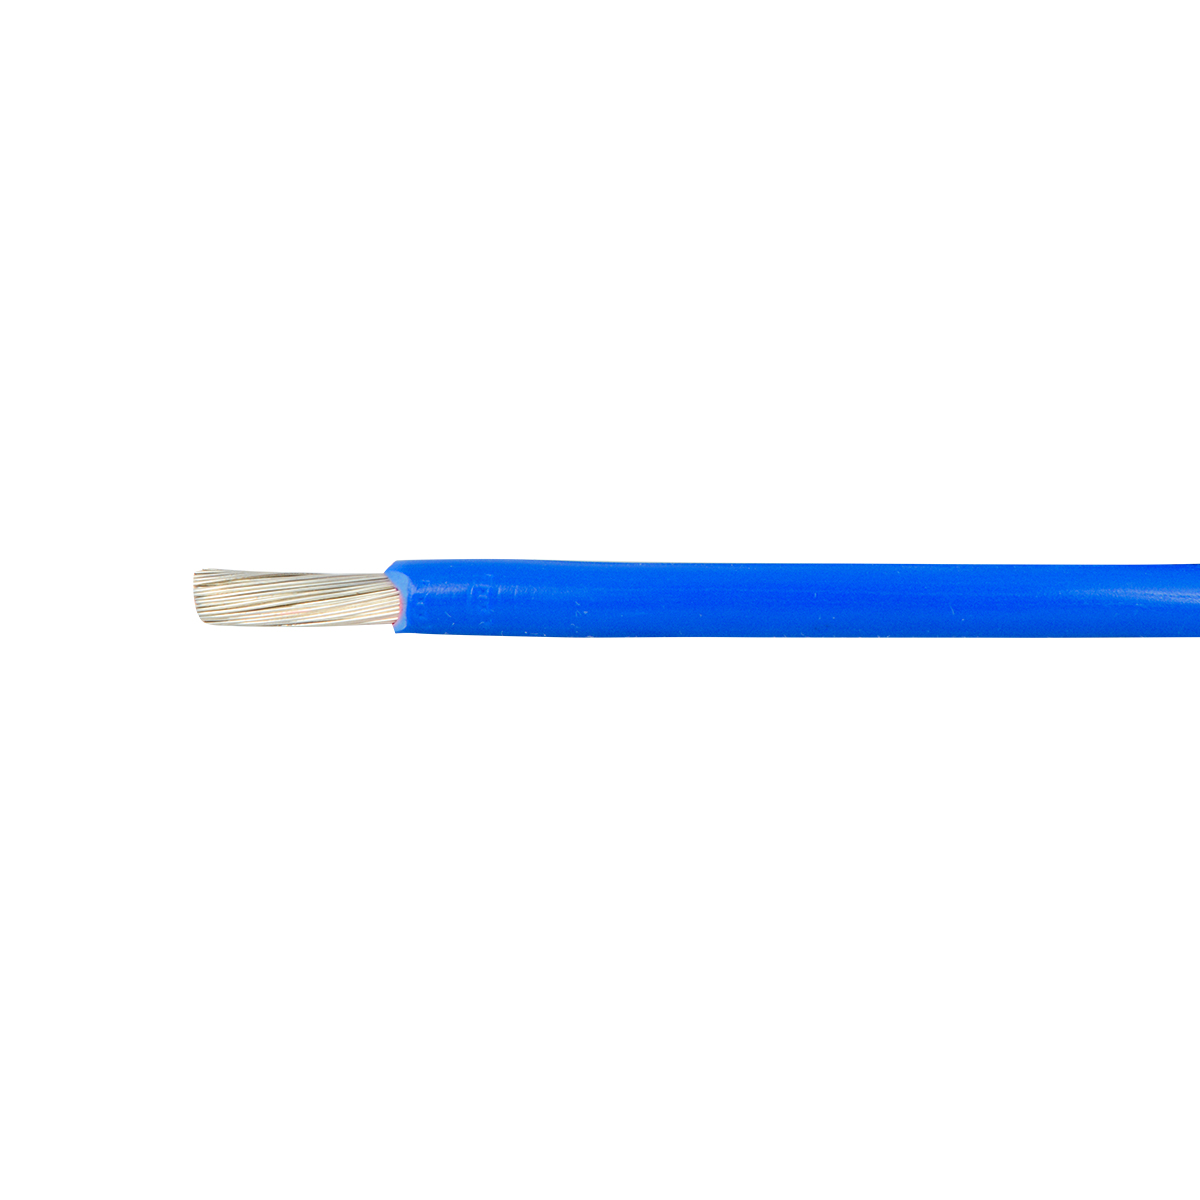 55031 Blue UL Listed Primary Wires in 10 Gauge